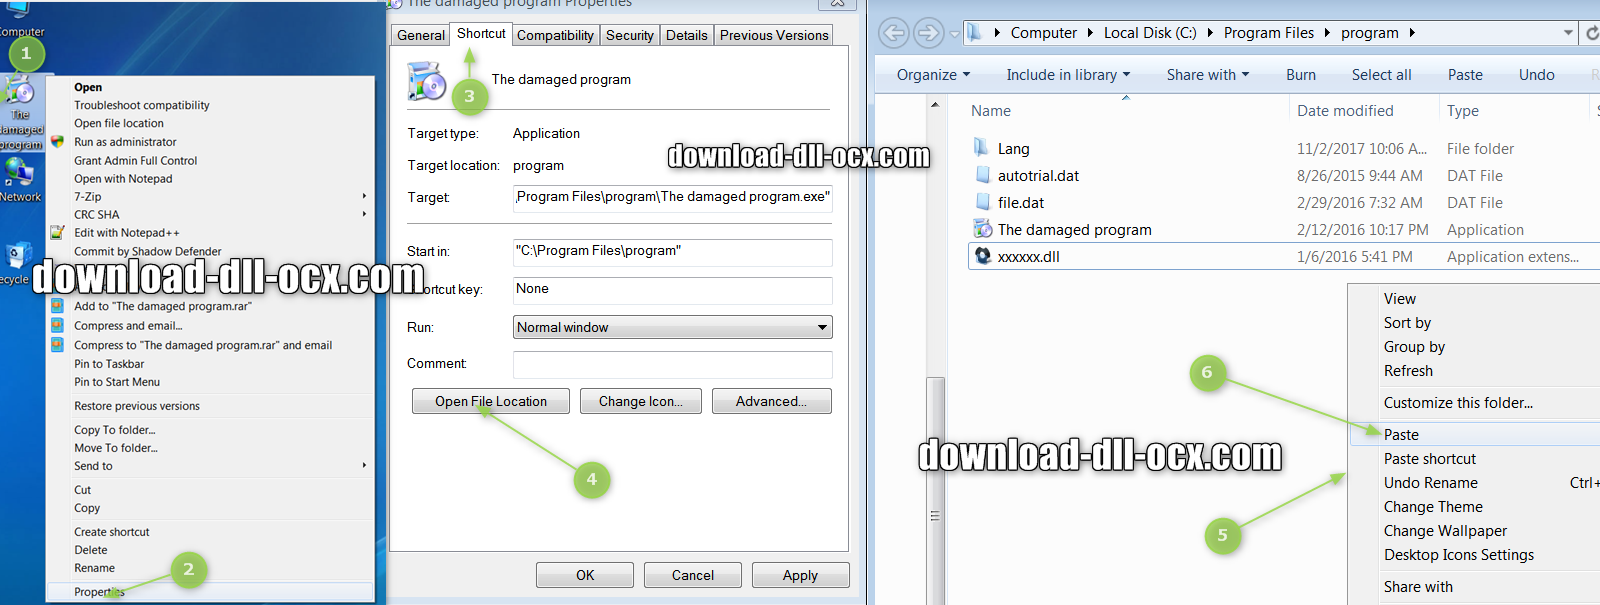 how to install OFFICEBEAN.dll file? for fix missing